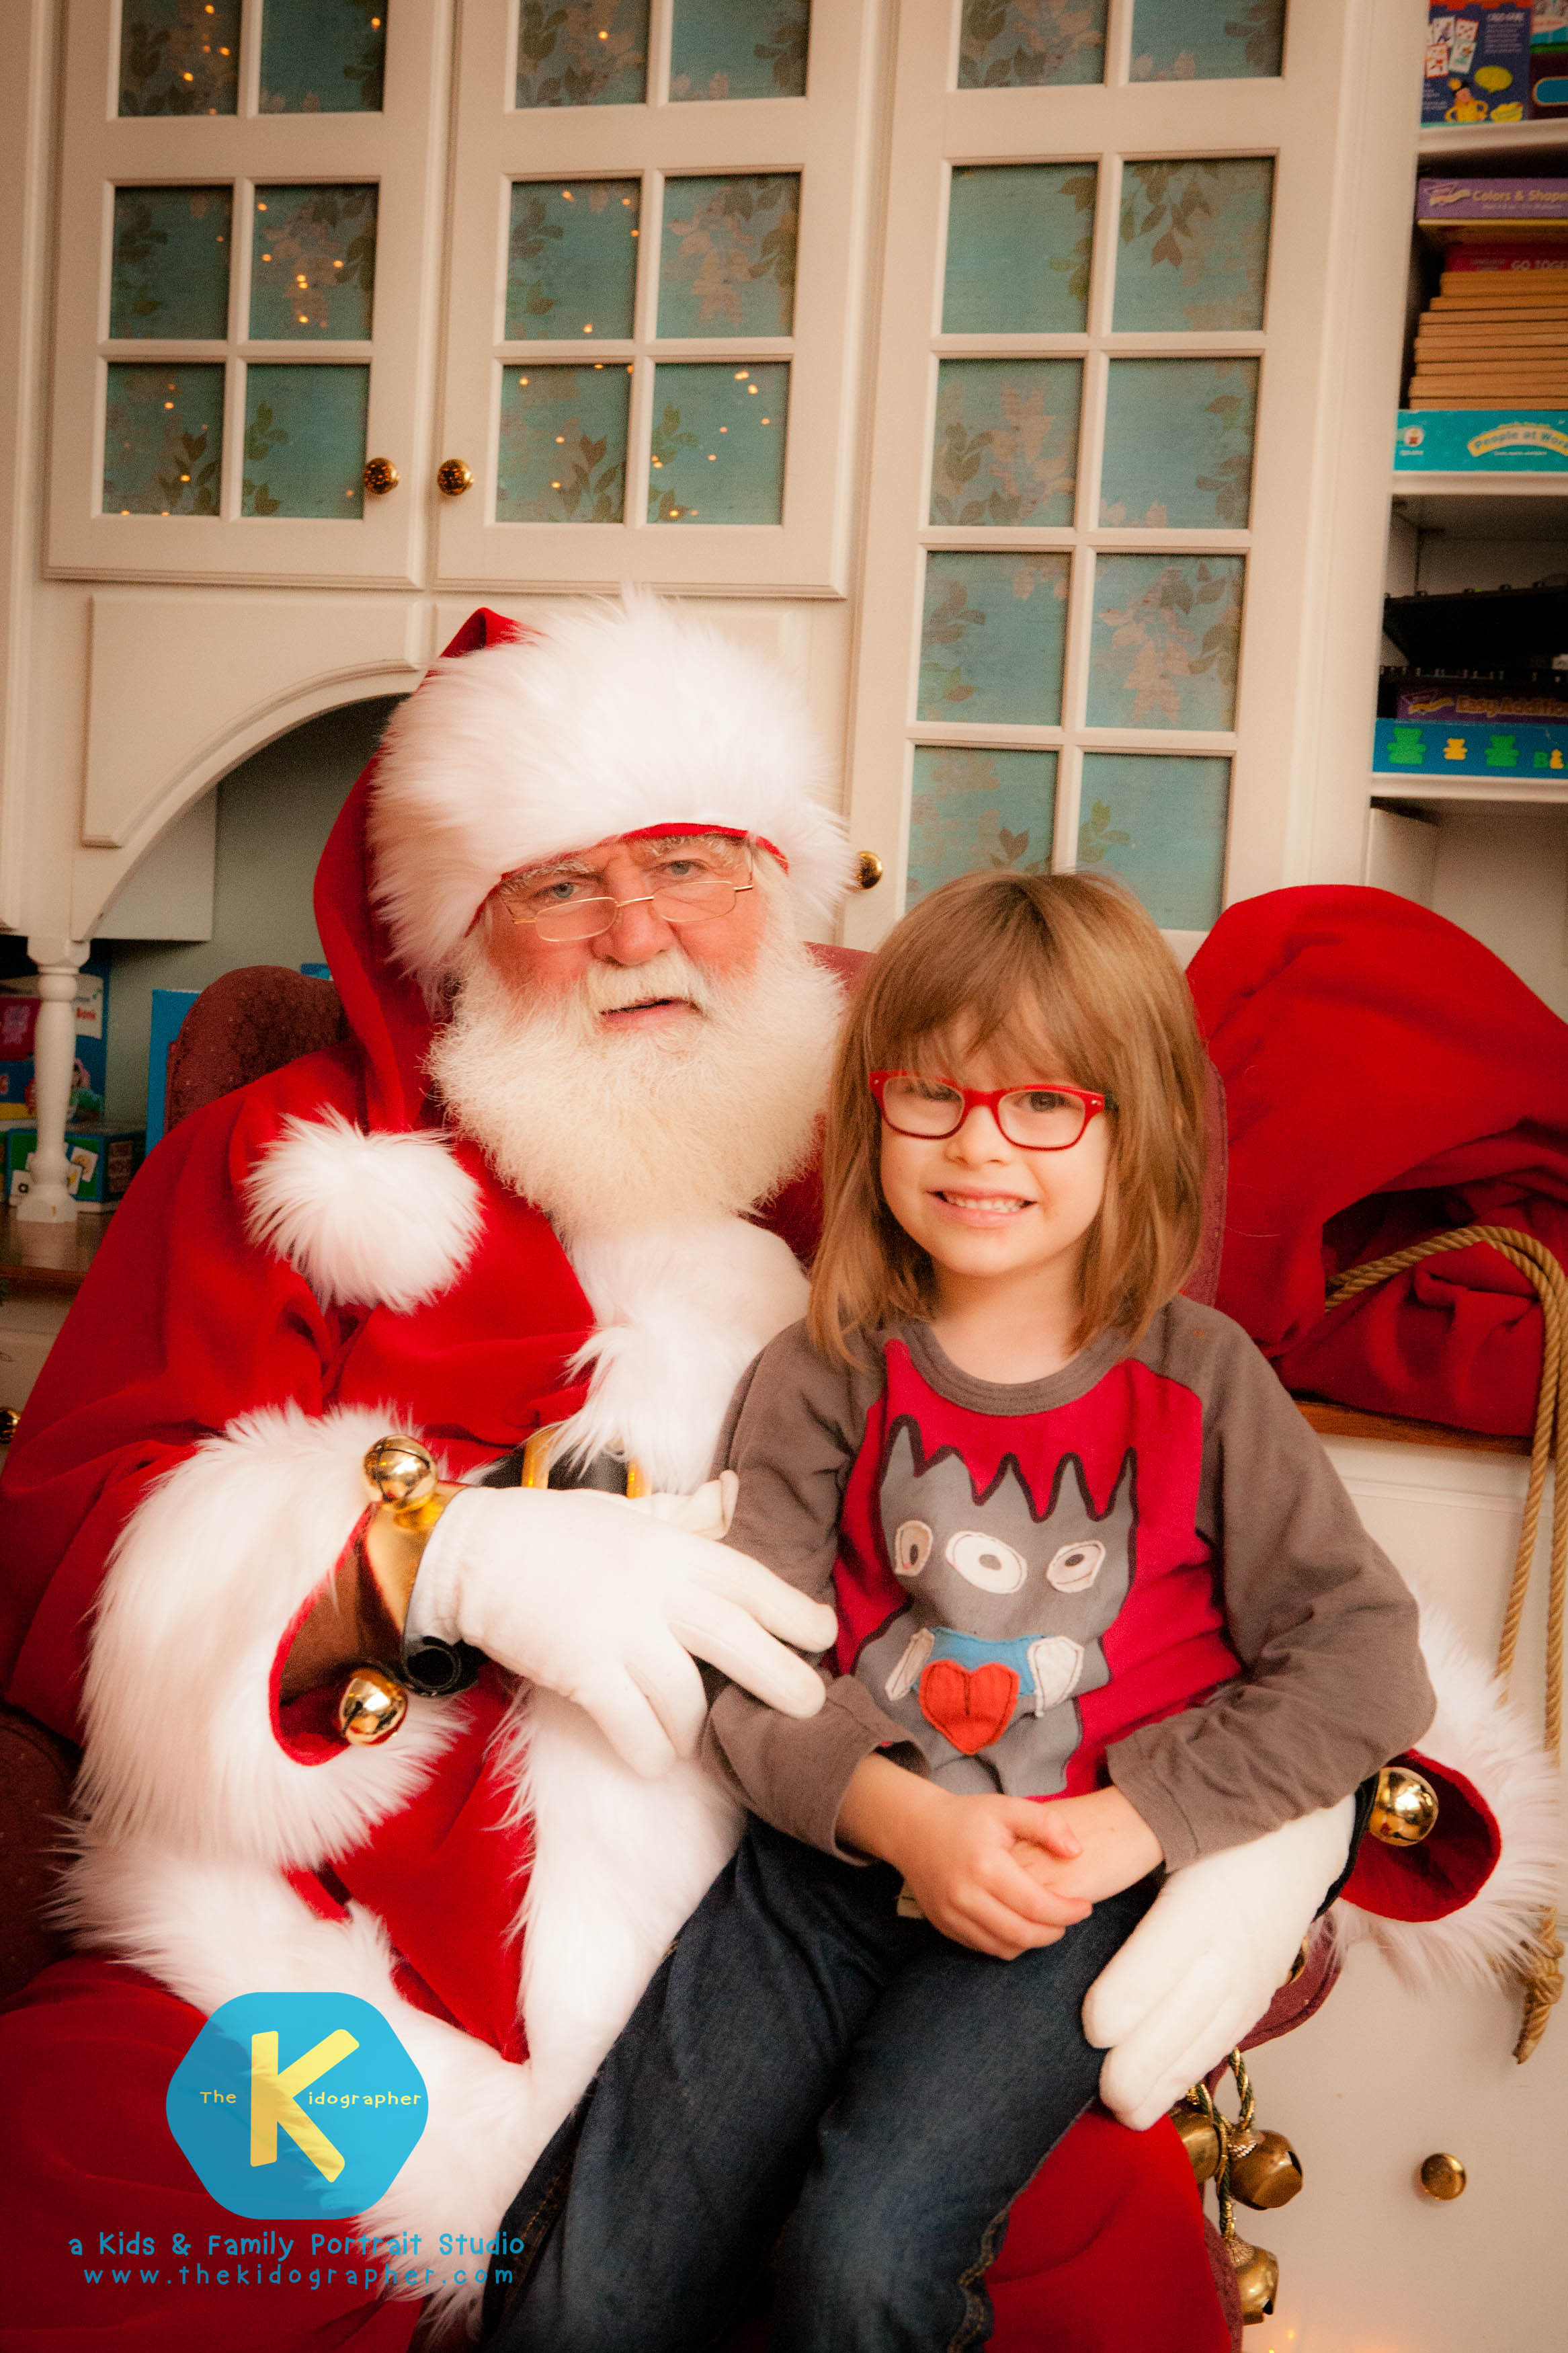 THE_KIDOGRAPHER_PHOTOS_WITH_SANTA-39.jpg